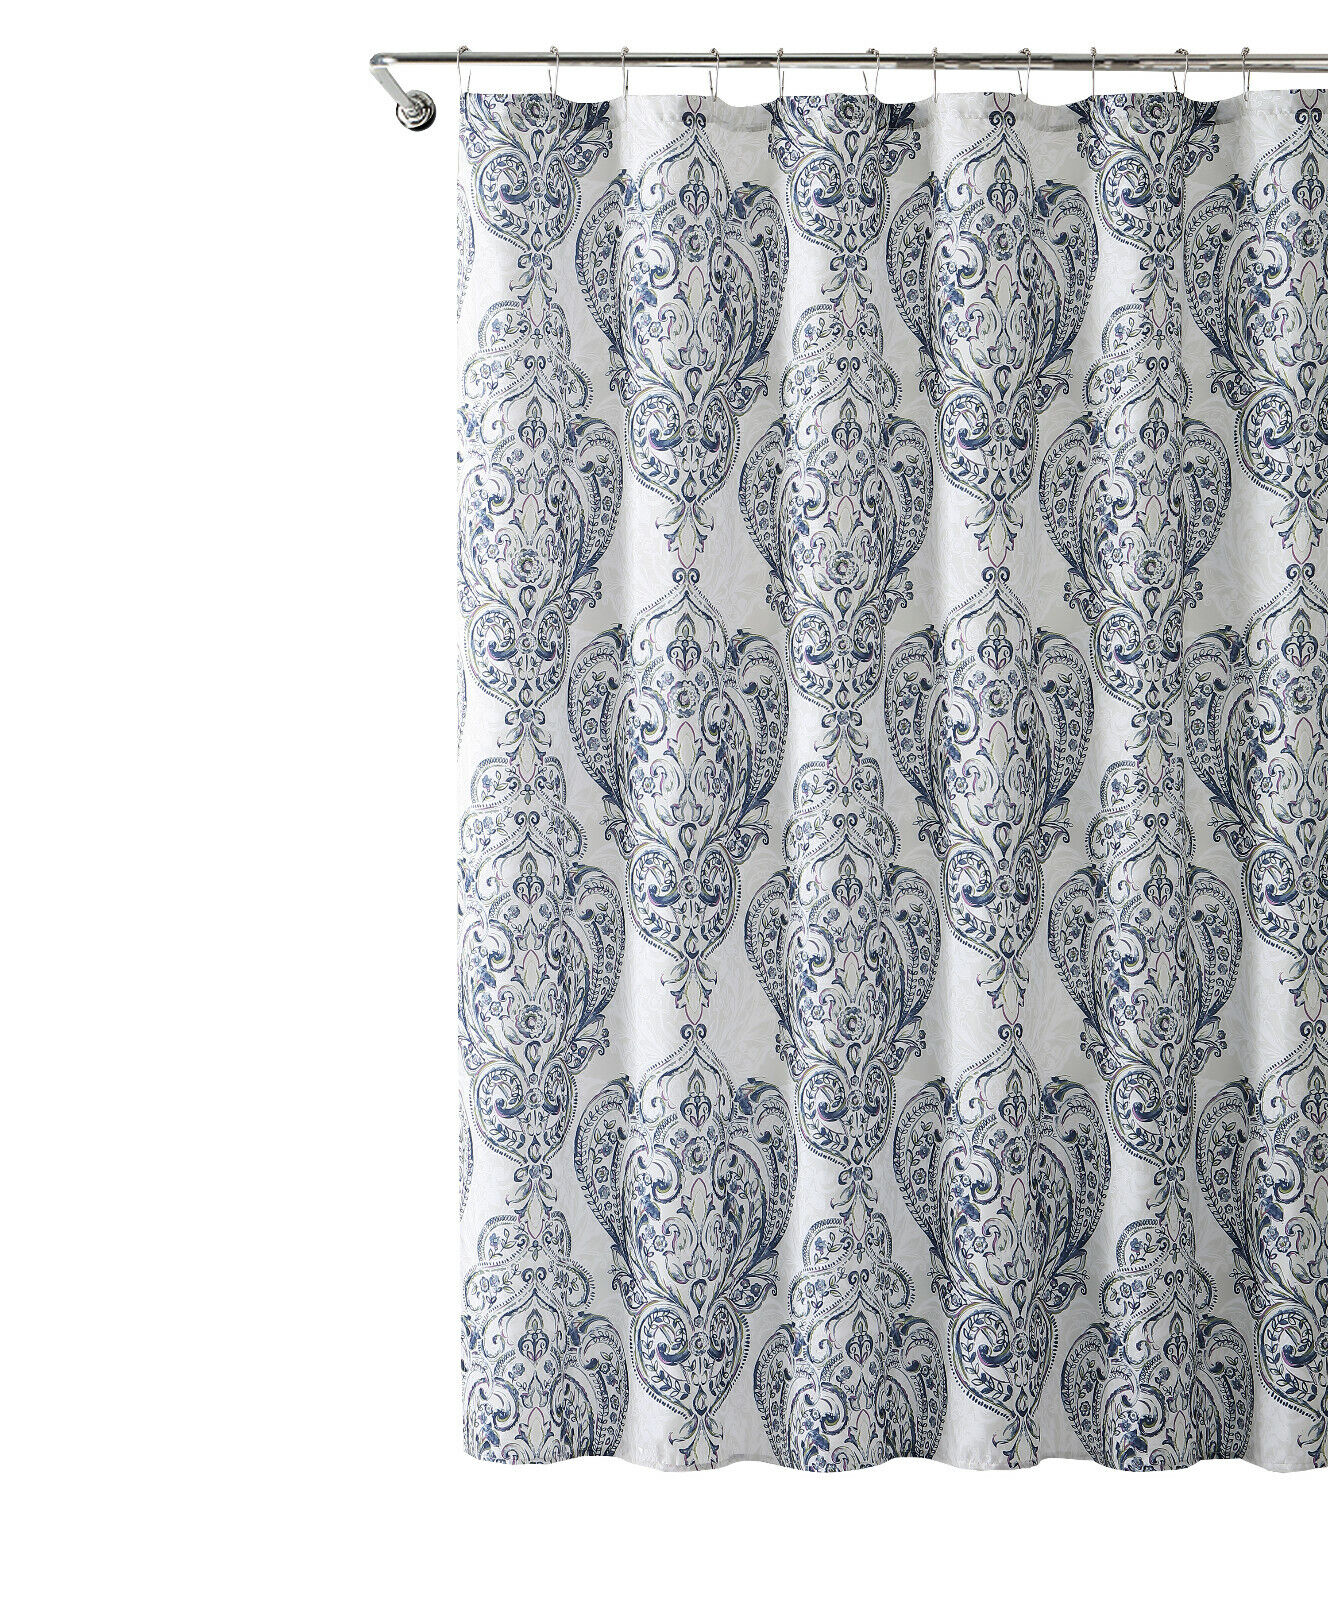 Details About Vcny Home Navy Purple Damask Fabric Shower Curtain With 12 Metal Hooks